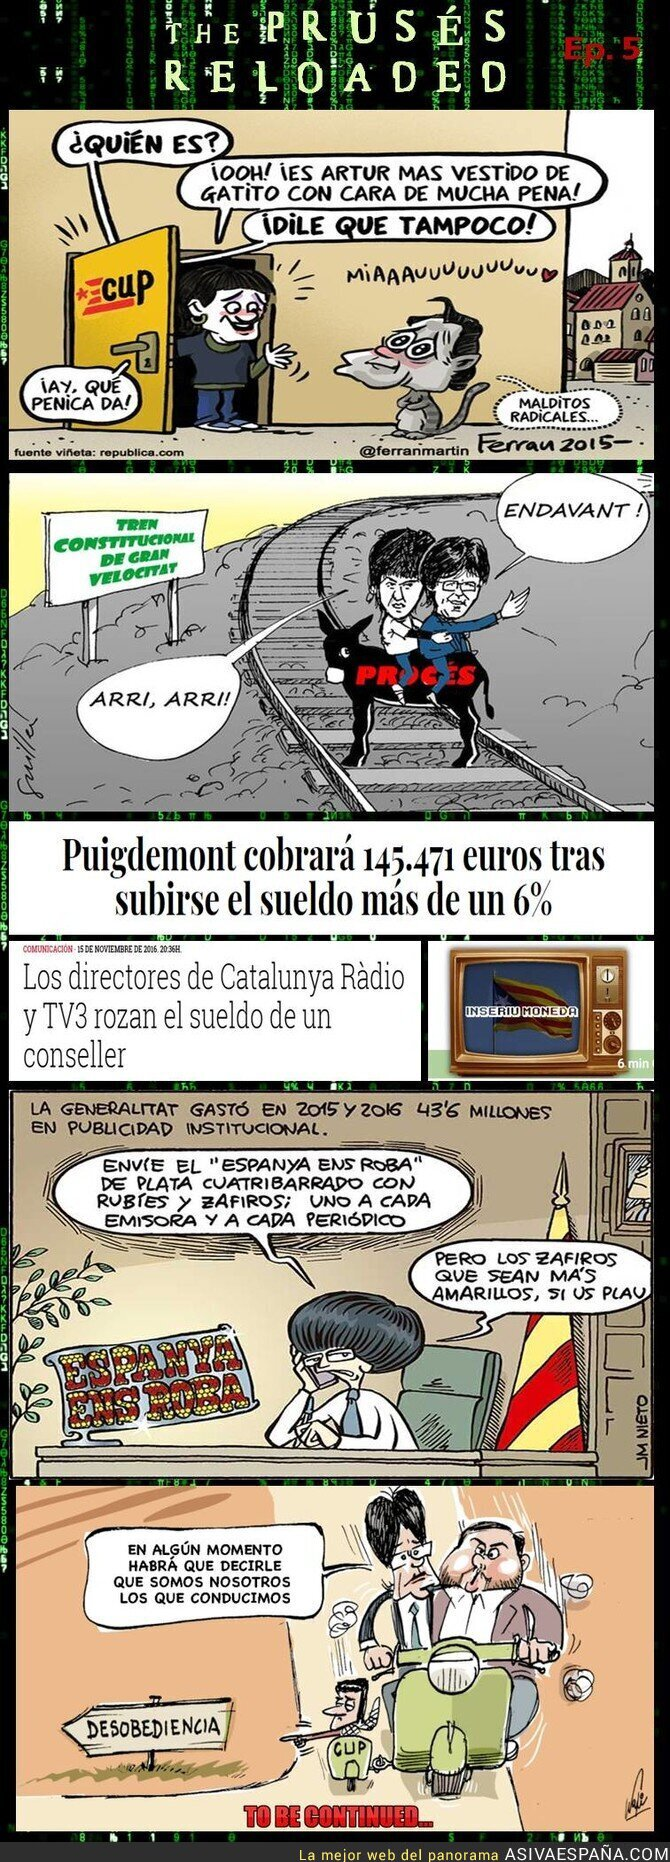 81187 - THE PRUSÉS RELOADED, Episodio 5